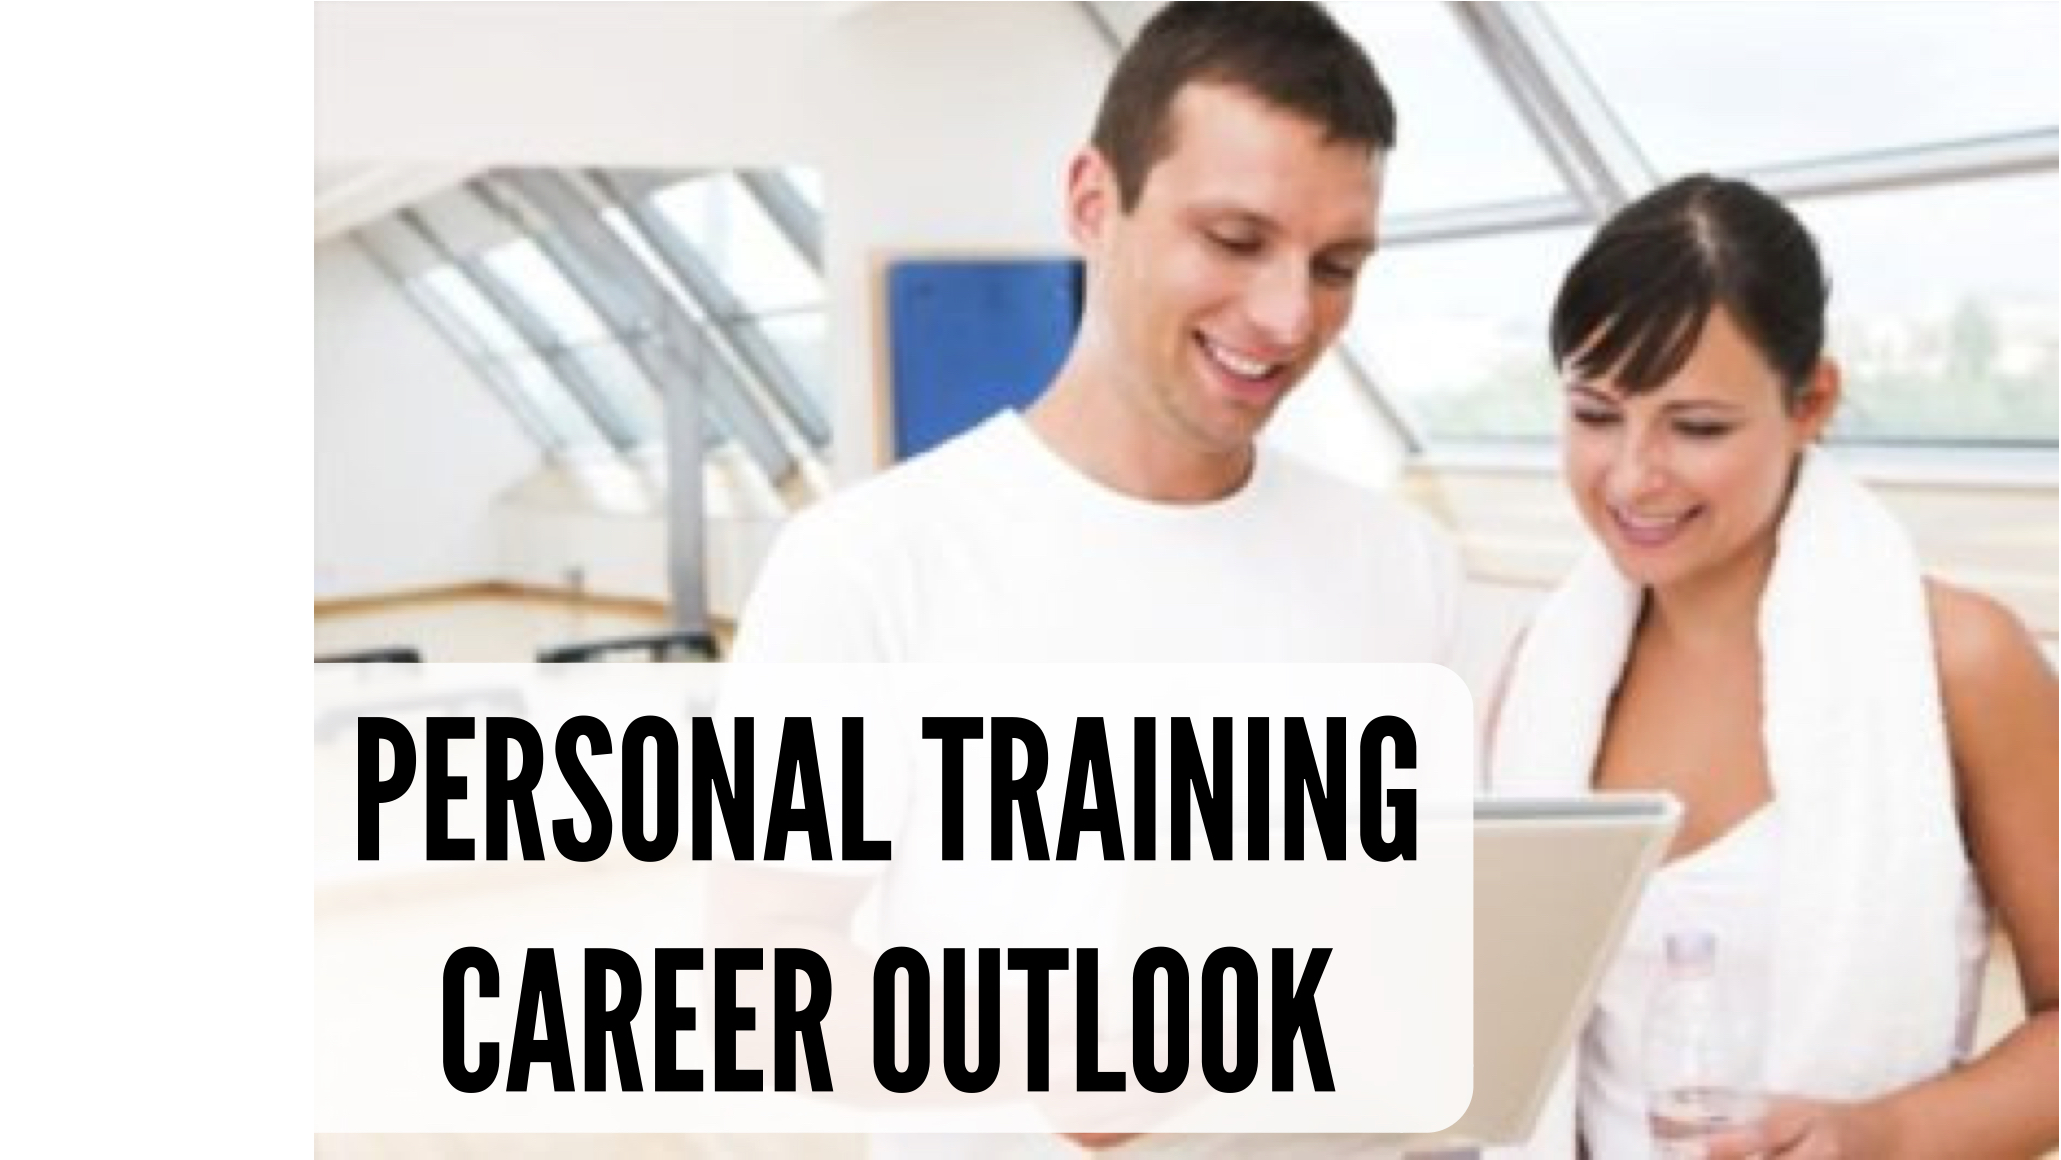 Two people looking at health information. The text on the image says Personal Training Career Outlook